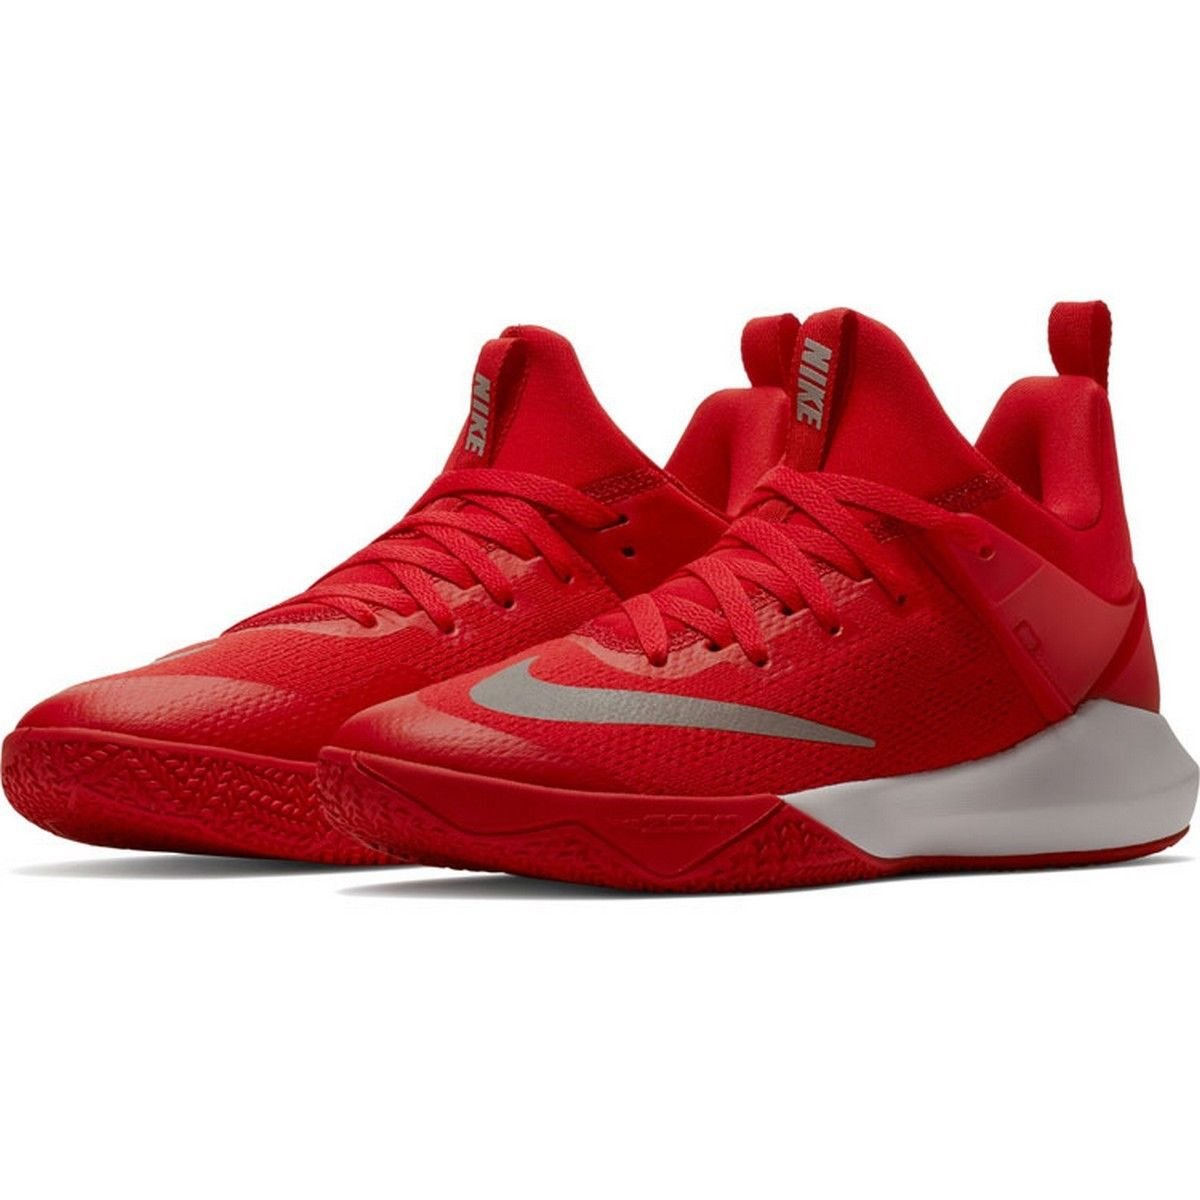 78fcd86ec89b Amazon.com  MEN S NIKE ZOOM SHIFT TB BASKETBALL SHOES 897811-600 UNIV. RED  SZ 6.5 (1R12)  Sports Collectibles